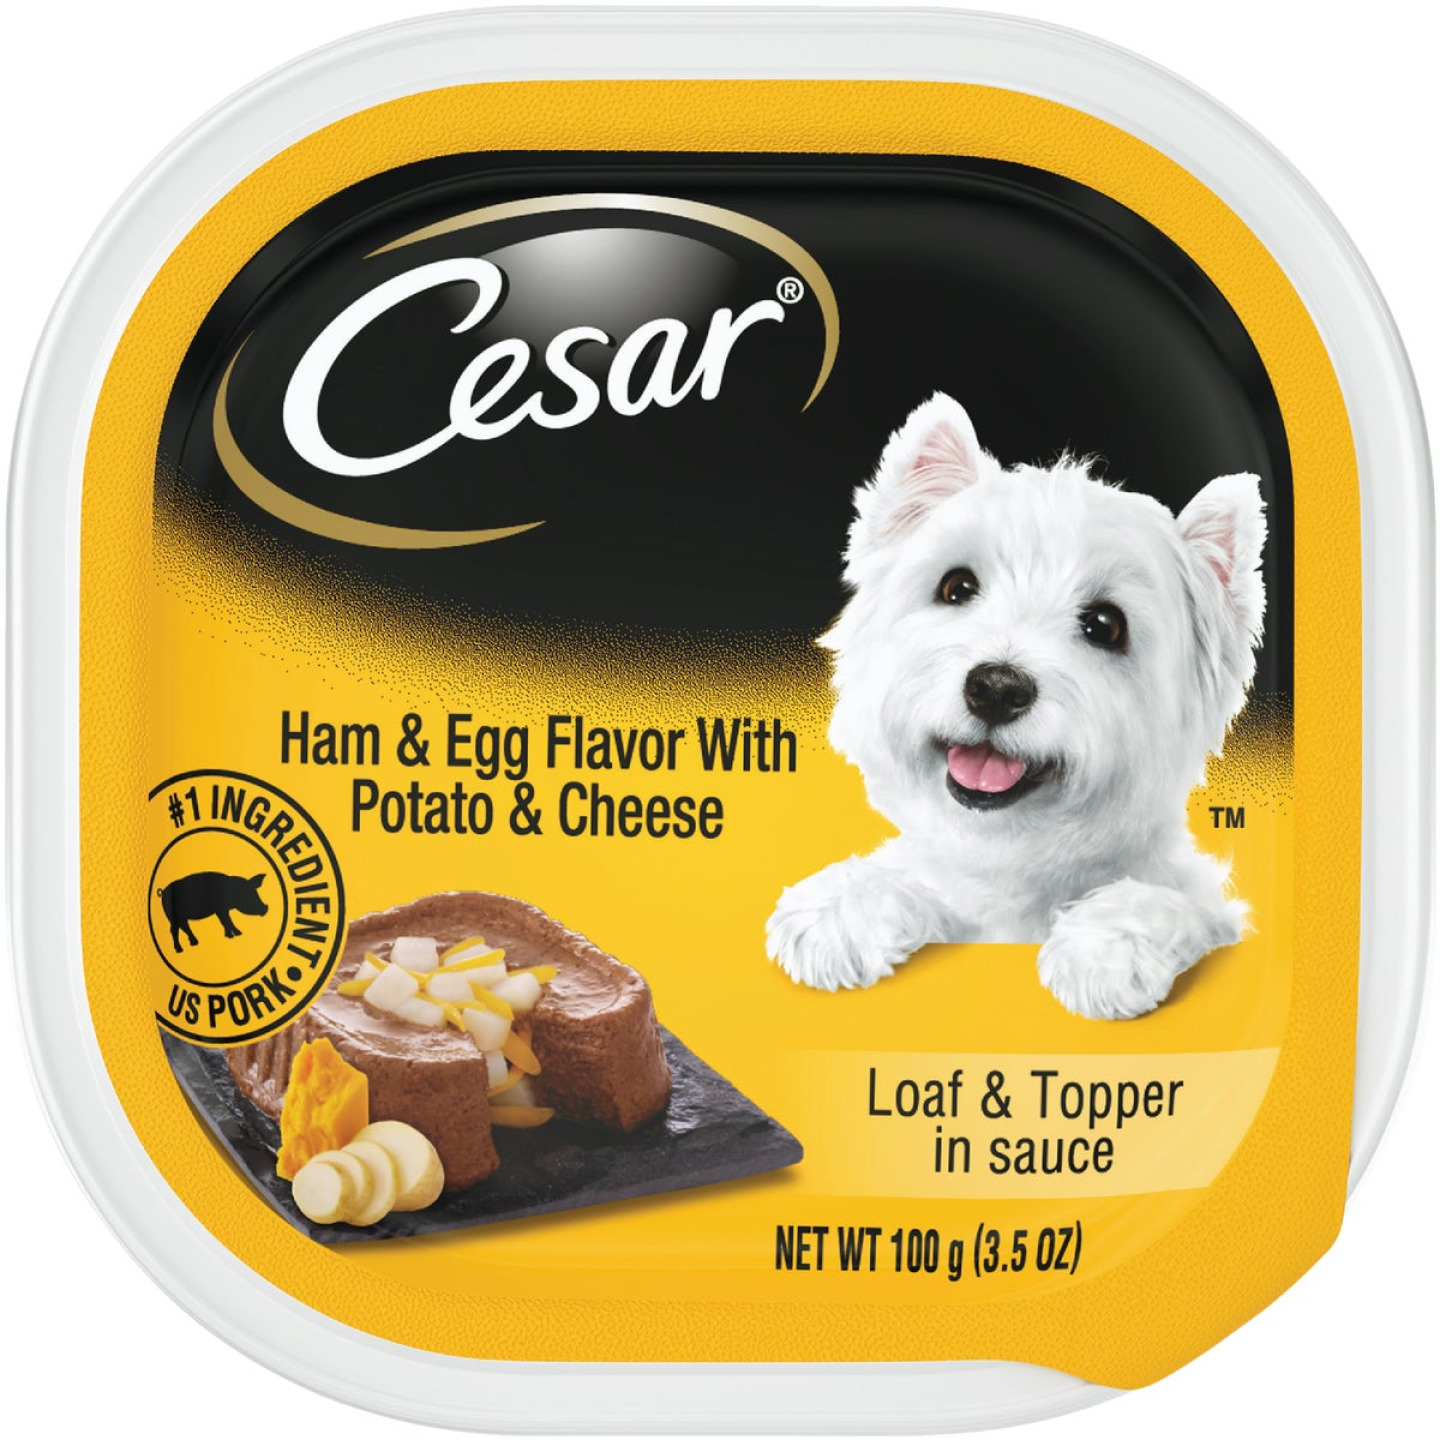 Cesar Loaf & Topper Ham & Egg with Potato & Cheese Adult Wet Dog Food, 3.5 Oz. Image 1